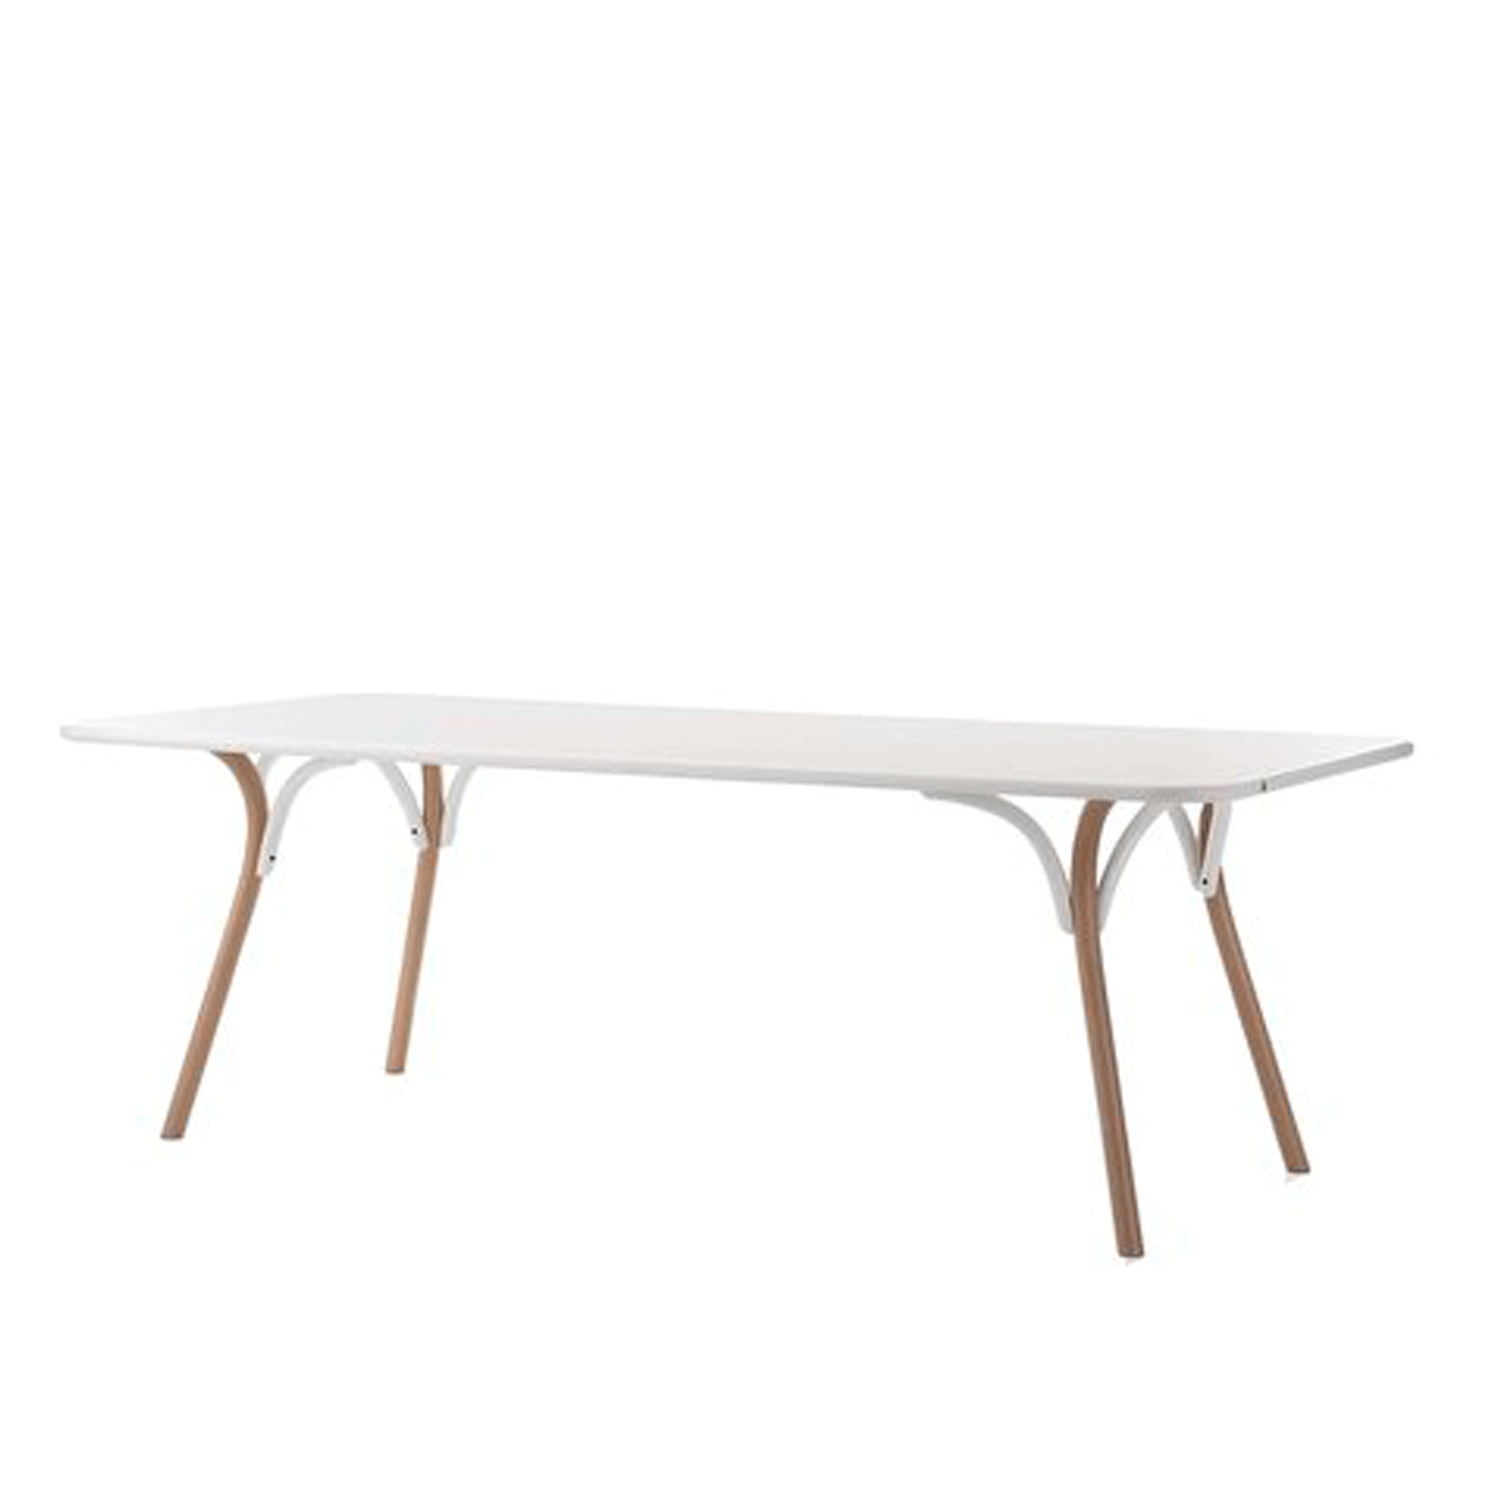 Arch Dining Table - This timeless object of functional decor boasts an elegant colour combination of white and natural wood that adds a cosy and sophisticated touch to a modern or rustic home. The structure of this dining table features slanted legs that curve at the top, connected by delicate arches that give its name to this piece, at its best when surrounded with white-lacquered or natural chairs.  Available in one tone stained, one tone lacquered and and two toned finishes:  B01 Stained Beech B03 Stained Dark Walnut  B04 Stained Wenge B05 Stained Beech Gloss   C01 Lacquered RAL 9005 Black  C02 Lacquered RAL 9010 Pure White  D01 Lacquered RAL 1013 Pearl White D02 Lacquered RAL 7047 Telegrey D03 Lacquered RAL 7030 Stone Grey D19 S7502 Dark Grey D21 S1510 Y80R Powder Pink D20 S2570 Y60R Orange D10 Lacquered RAL 3000 Flame Red  D14 Lacquered RAL 3005 Wine Red D22 S1515 R90B Light Blue D11 Lacquered RAL 7000 Squirrel Grey D12 Lacquered RAL 7031 Blue Grey D25 Lacquered RAL 5011 Steel Blue D15 Lacquered RAL 5020 Ocean Blue D24 S2070 Y10R Yellow Ocre D07 Lacquered RAL 1027 Curry Yellow  D23 S6020 G10Y Dark Green  Two tone finishes: C01 Lacquered RAL 9005 Black   B03 Stained Dark Walnut   C02 Lacquered RAL 9010 Pure White  B01 Stained Beech  B07 Stained Ash B01 Stained Beech   | Matter of Stuff